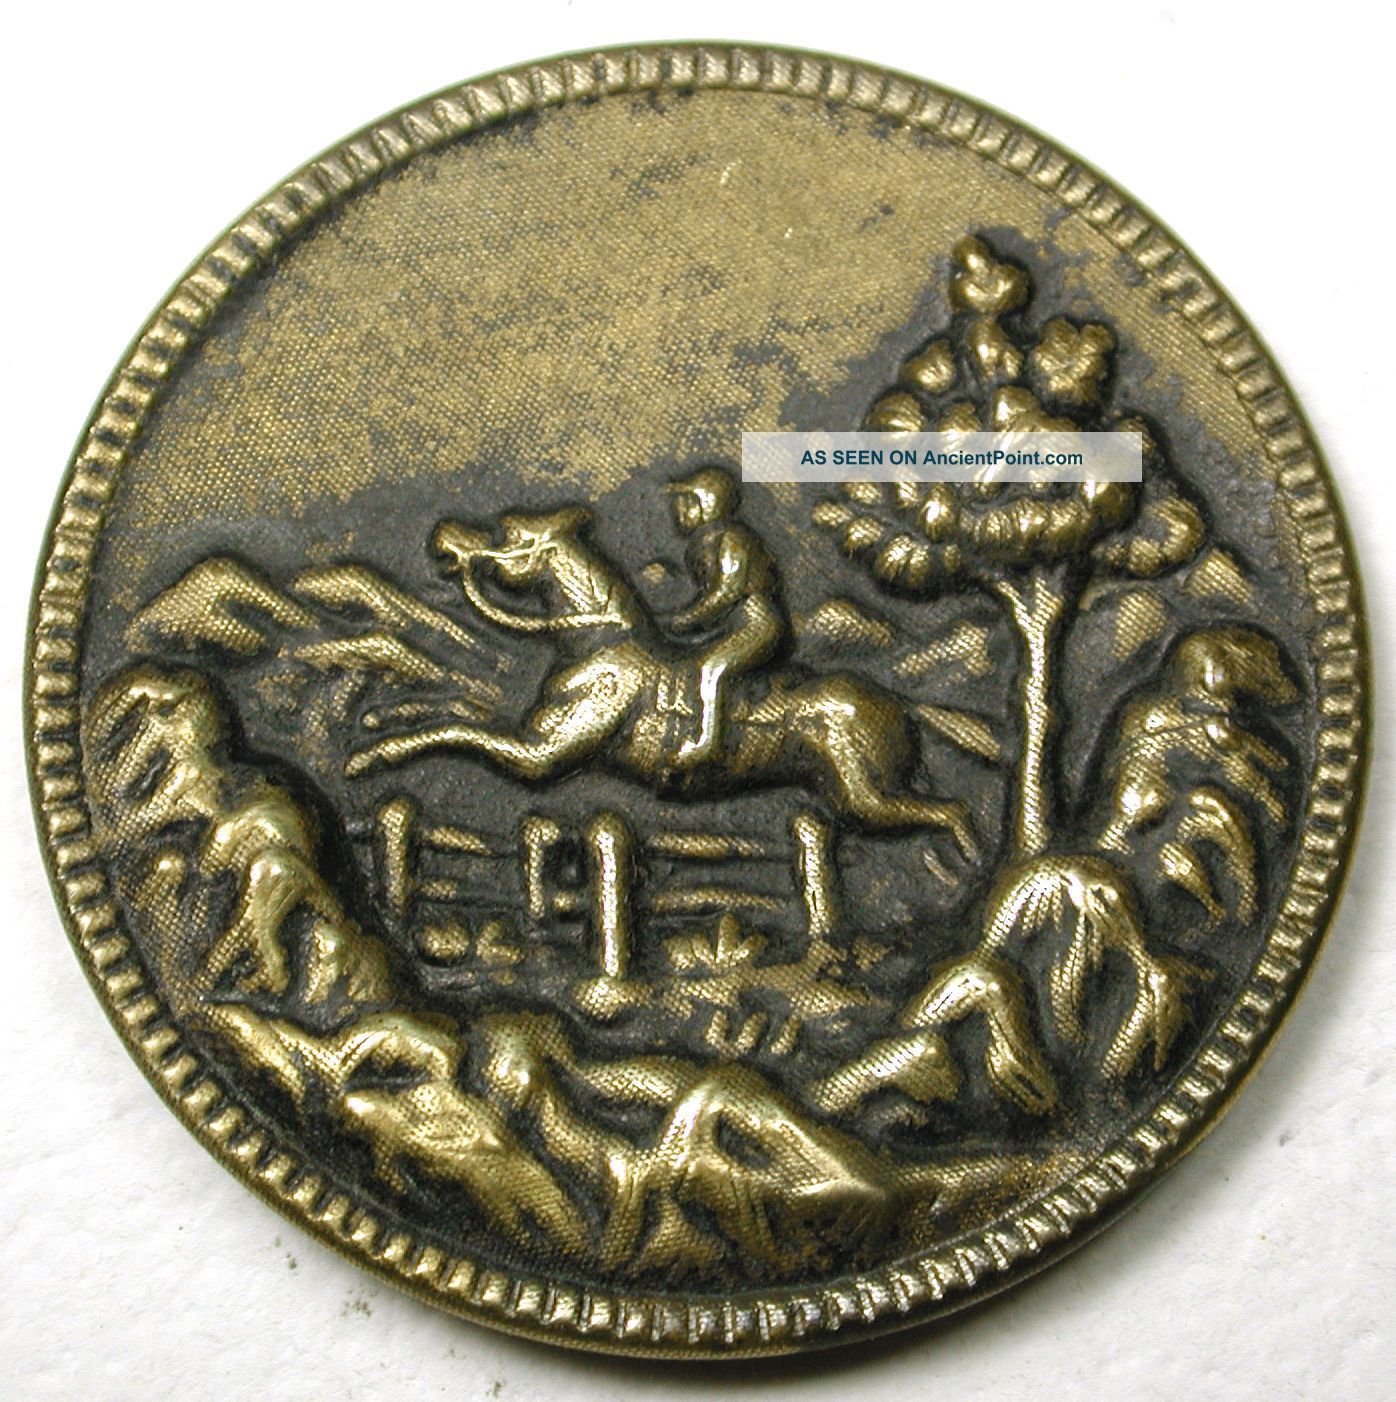 Lg Sz Antique Brass Equestrian Button Horse & Rider Jumping Scene 1 & 7/16